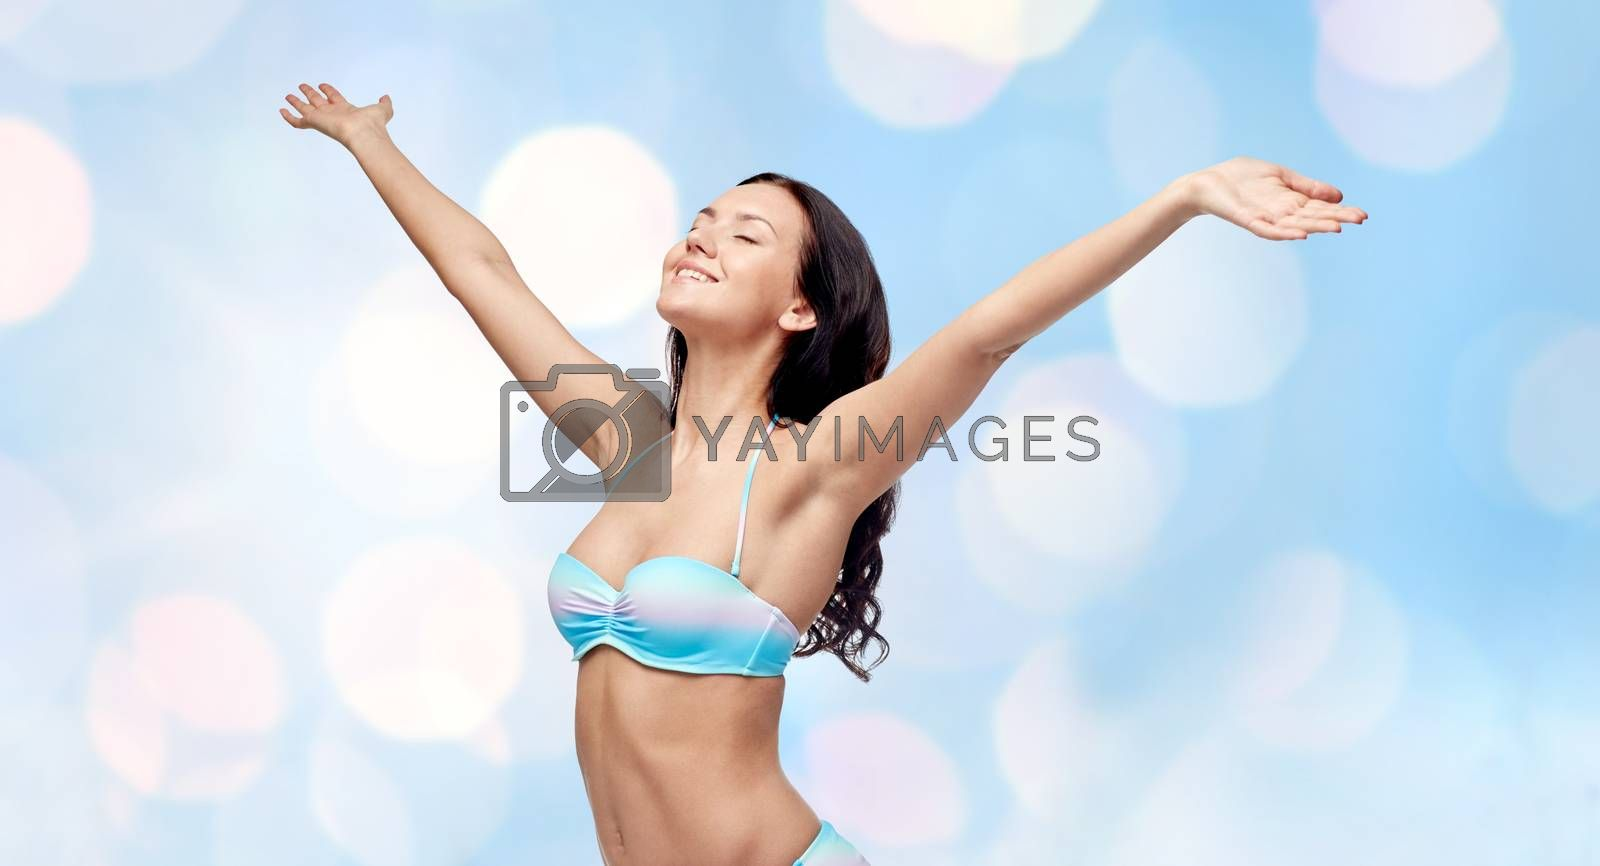 people, summer, happiness and beach concept - happy young woman in bikini swimsuit with raised hands and closed eyes over blue holidays lights background